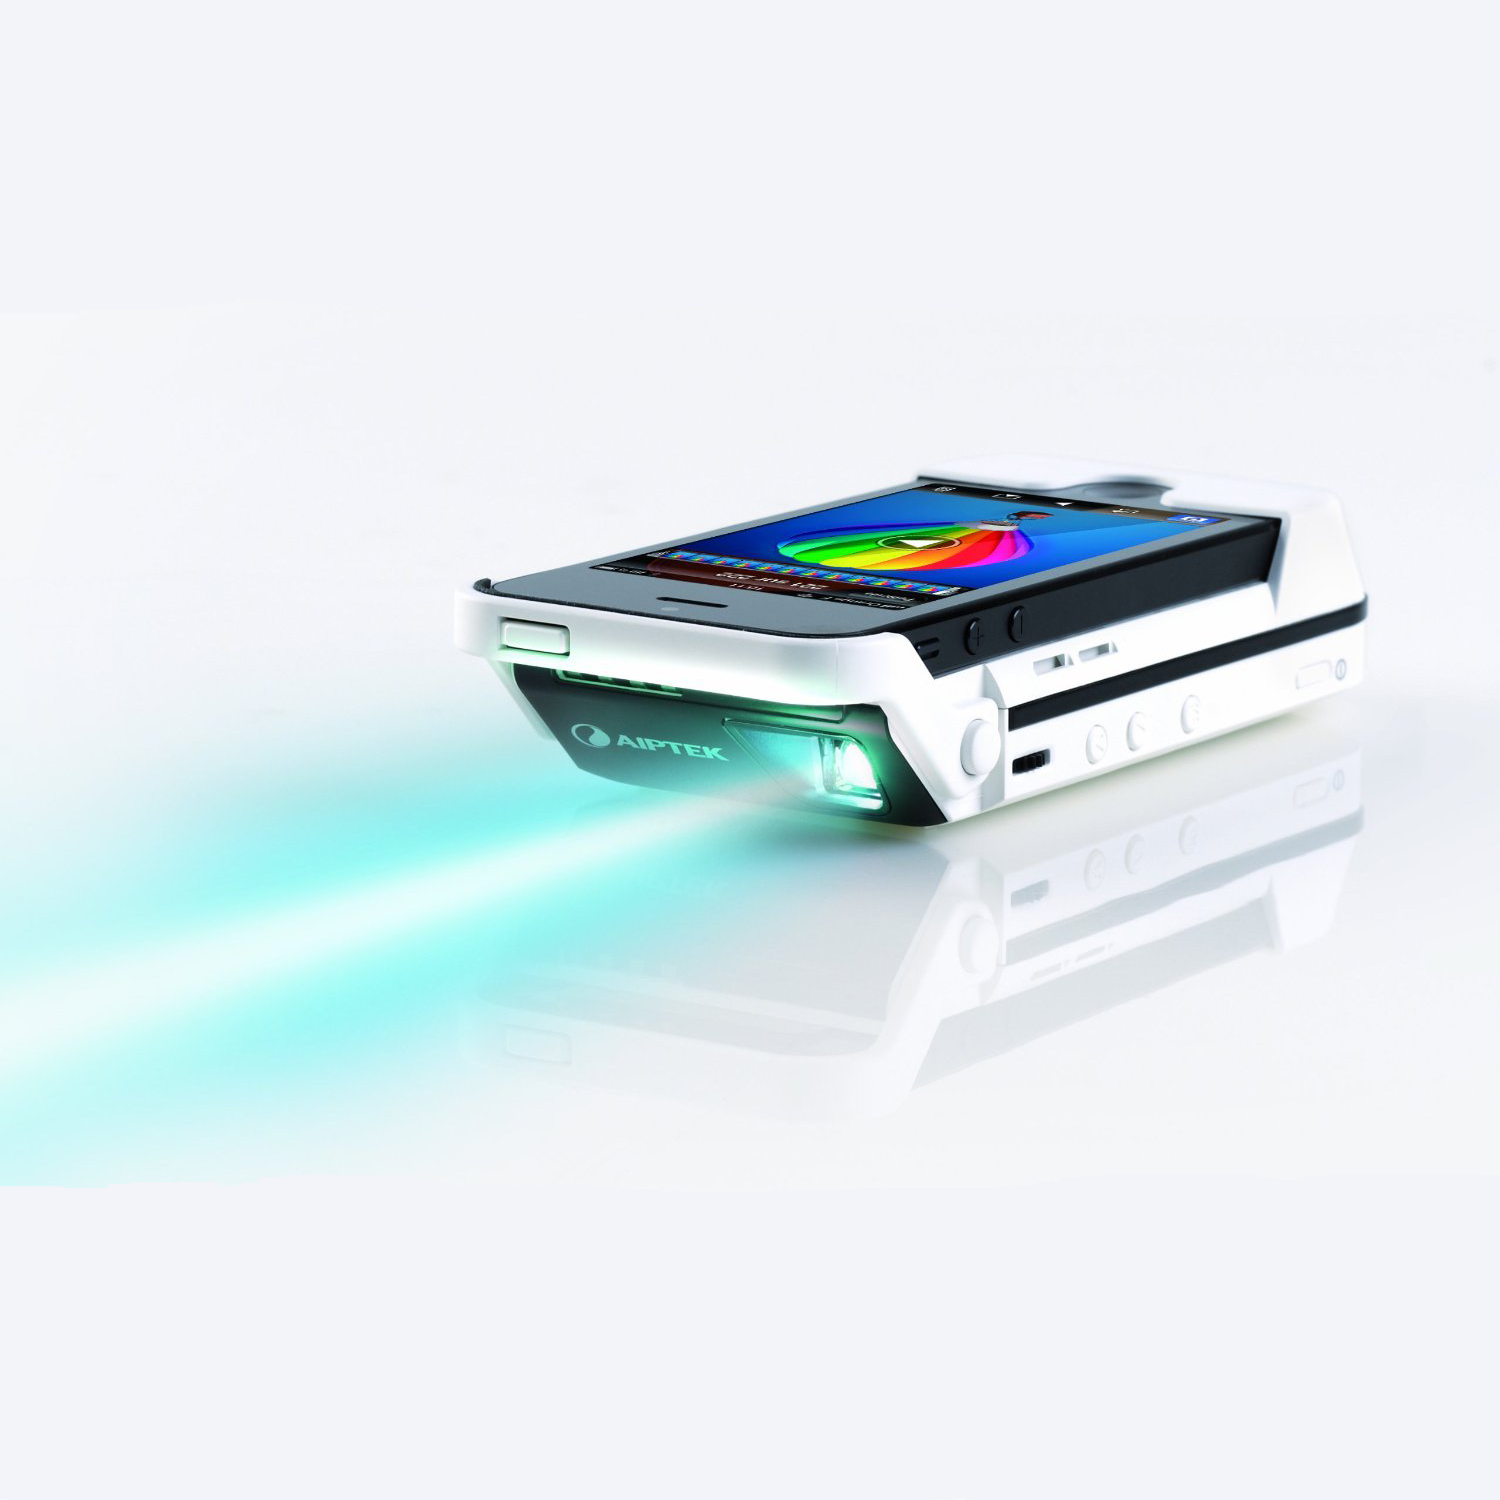 Iphone hook up to projector